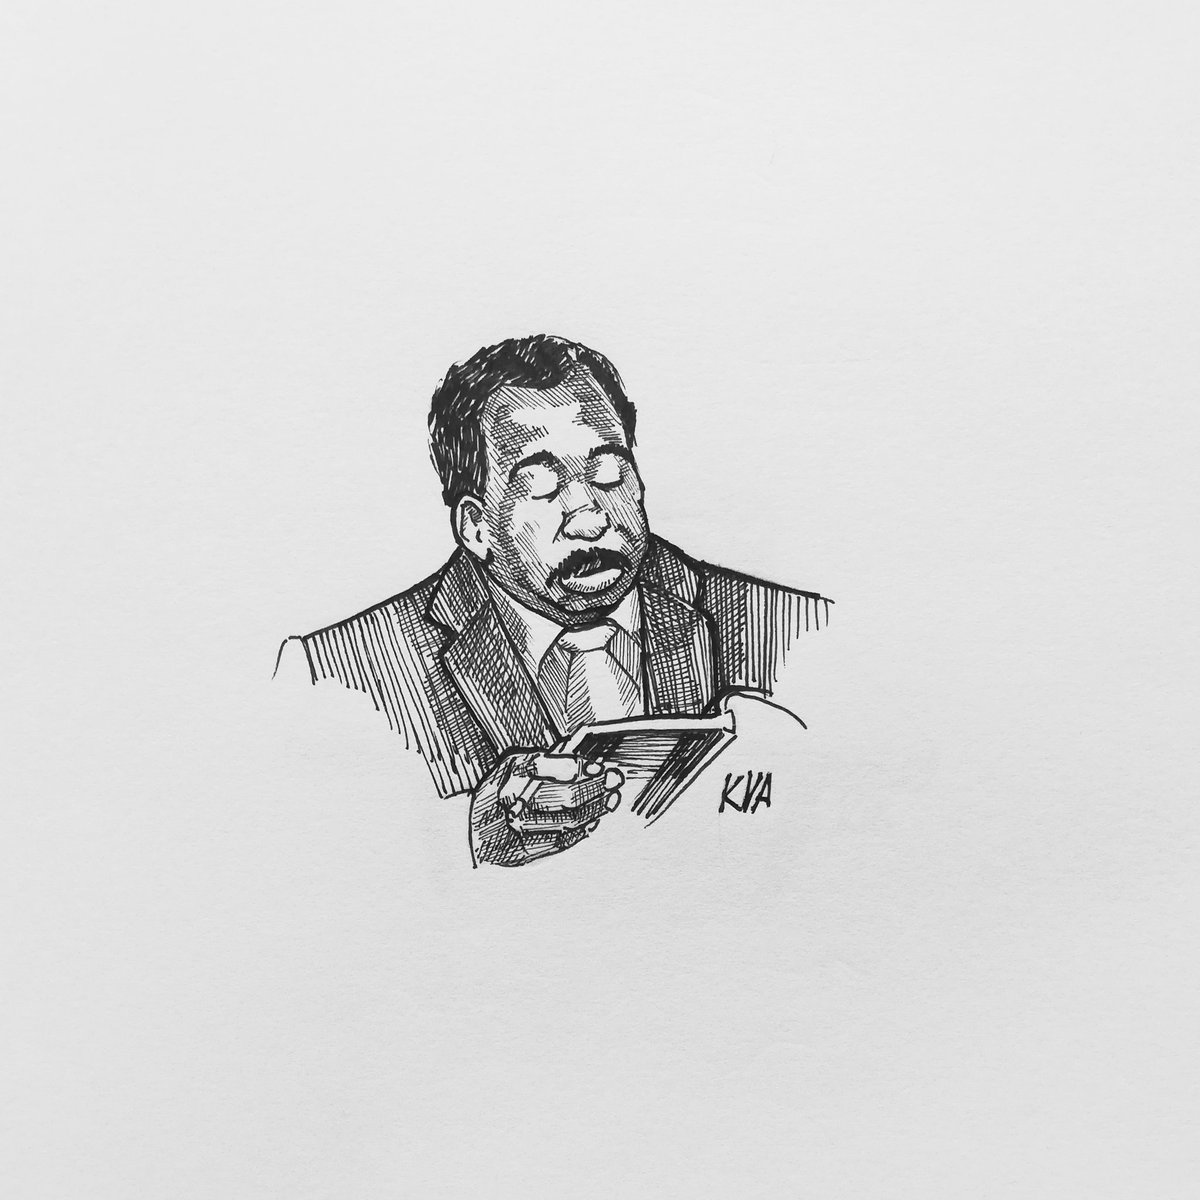 Nr. 48 yawn  #inktober2020 #inktober52 #inktober #yawn #theoffice #theofficeus #stanley #stanleyhudson #alwaysbored #passingtime #salesman #dundermifflin #papercompany #illustration #drawing #art